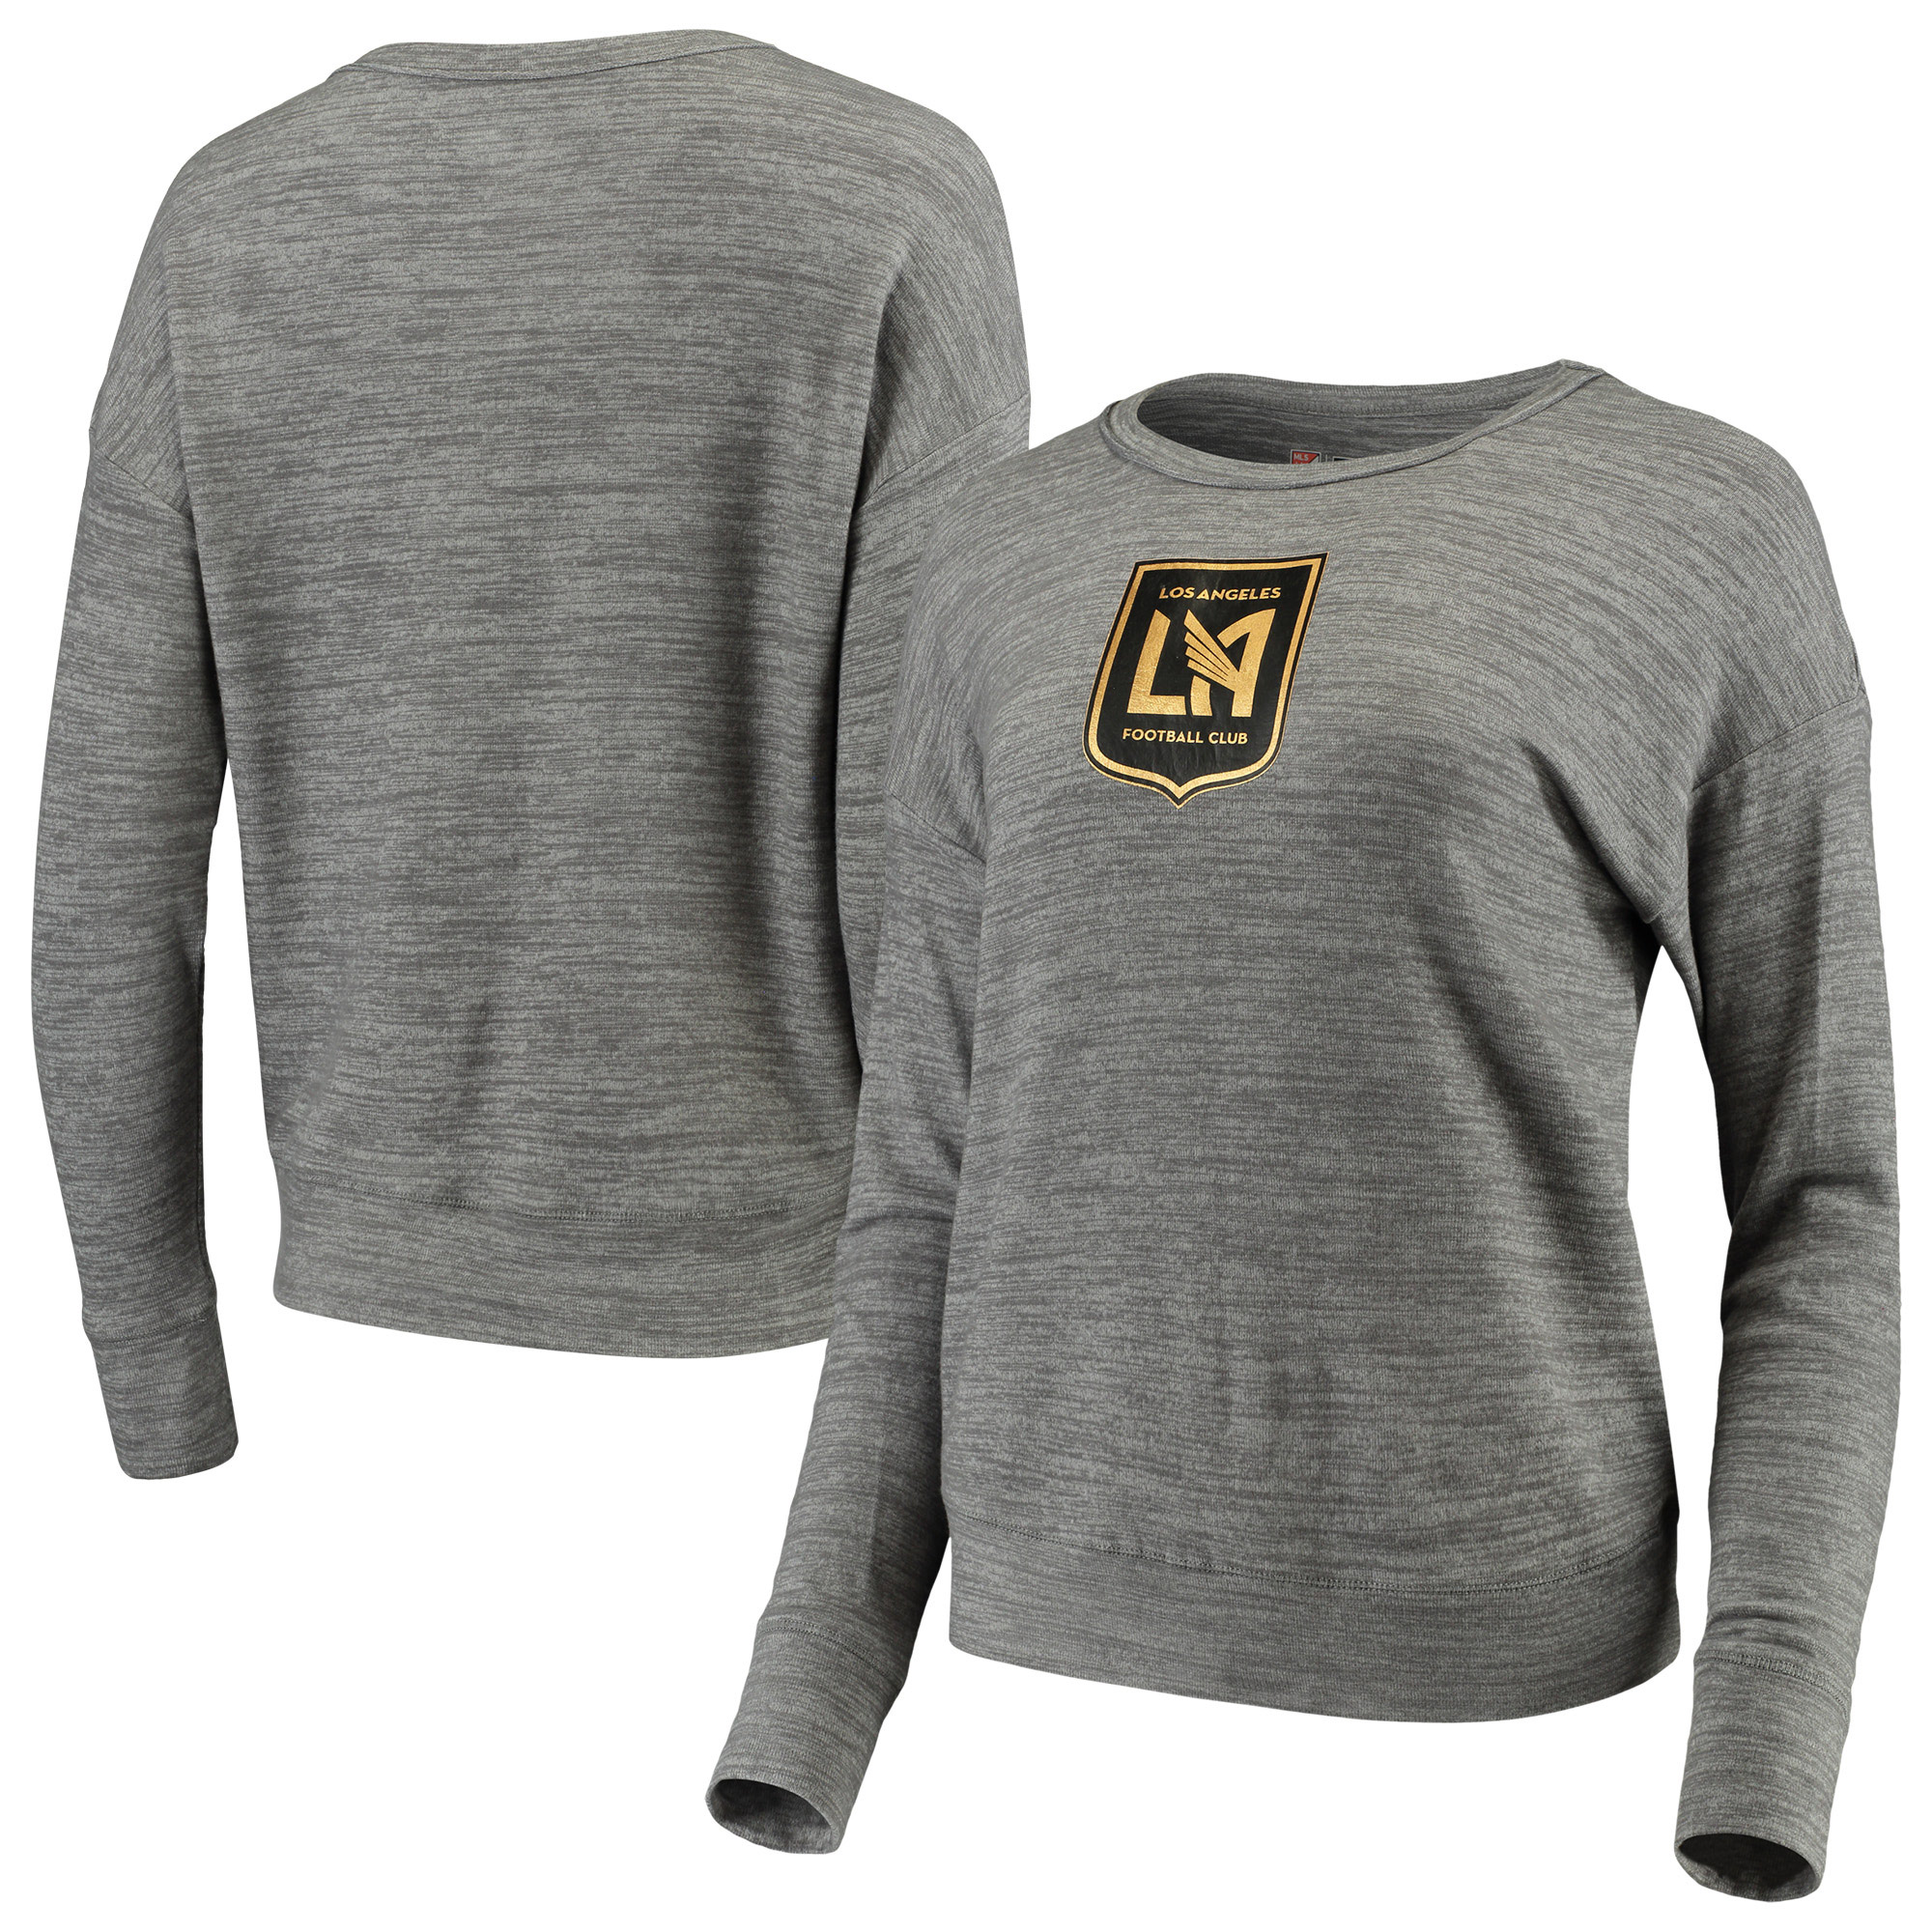 LAFC 5th & Ocean by New Era Women's Space Dye Tri-Blend Sweater - Heathered Gray